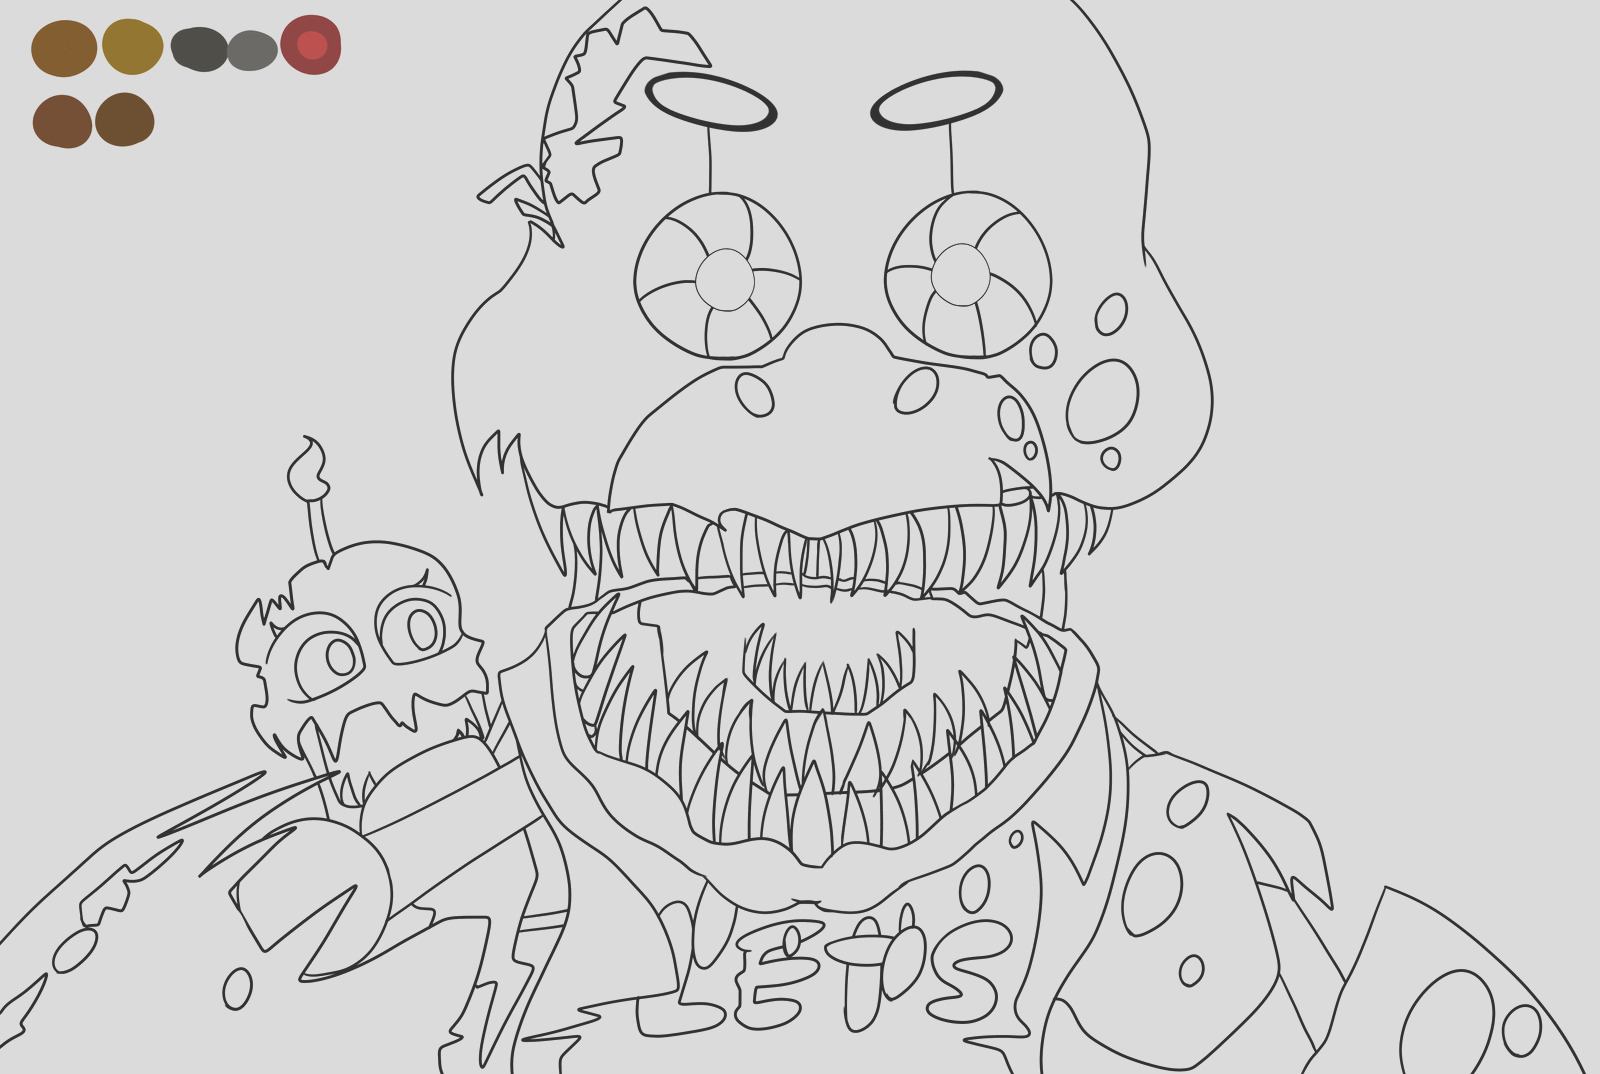 Nightmare Chica outline